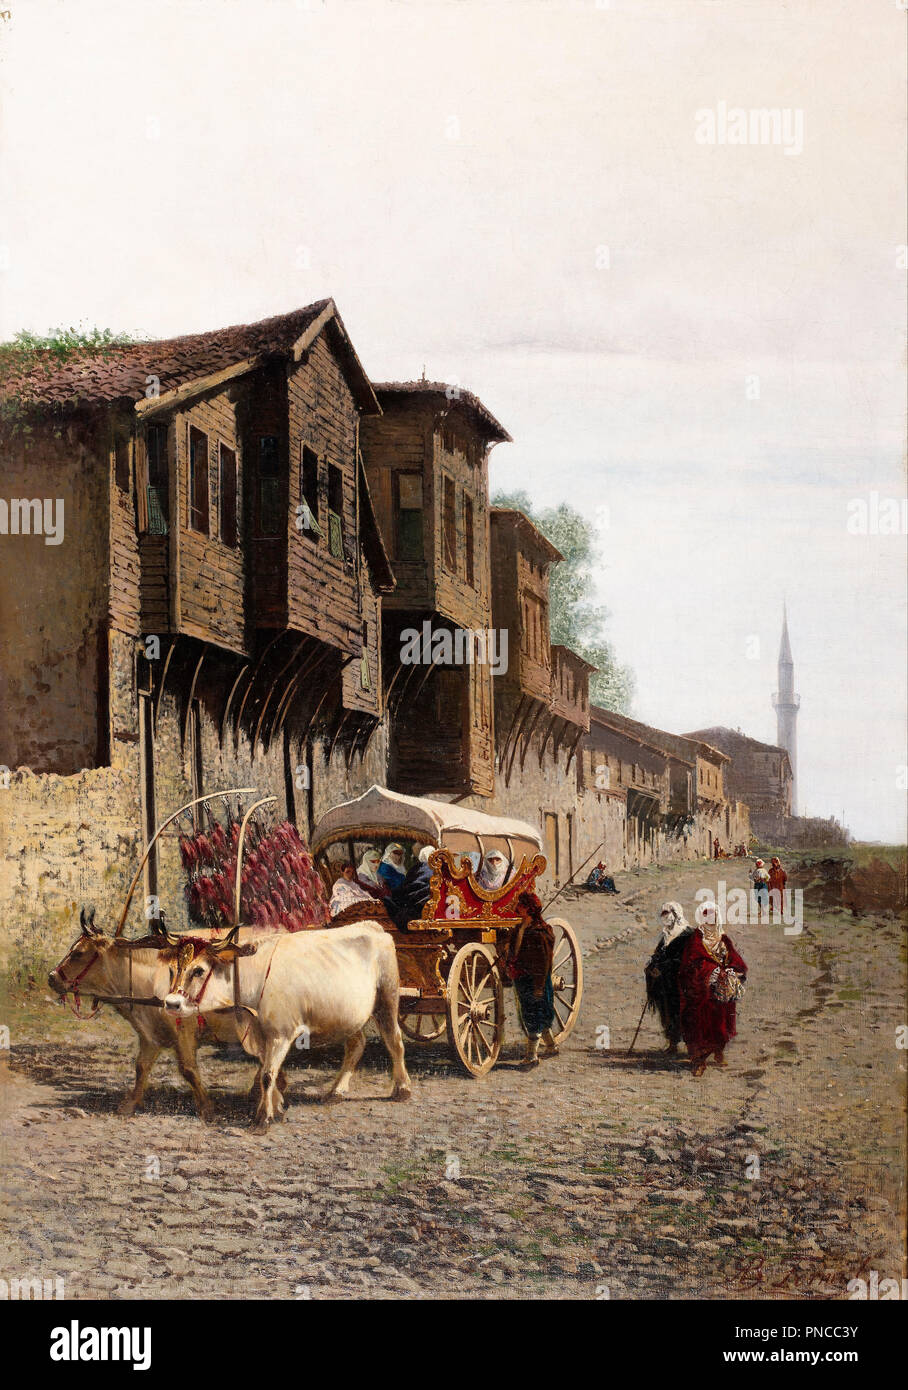 "The ""Koçu"" Cart. Date/Period: Second half of the 19th century. Painting. Oil on canvas. Height: 1,000 mm (39.37 in); Width: 700 mm (27.55 in). Author: Achille Befani Formis. Formis (Befani), Achille. Stock Photo"